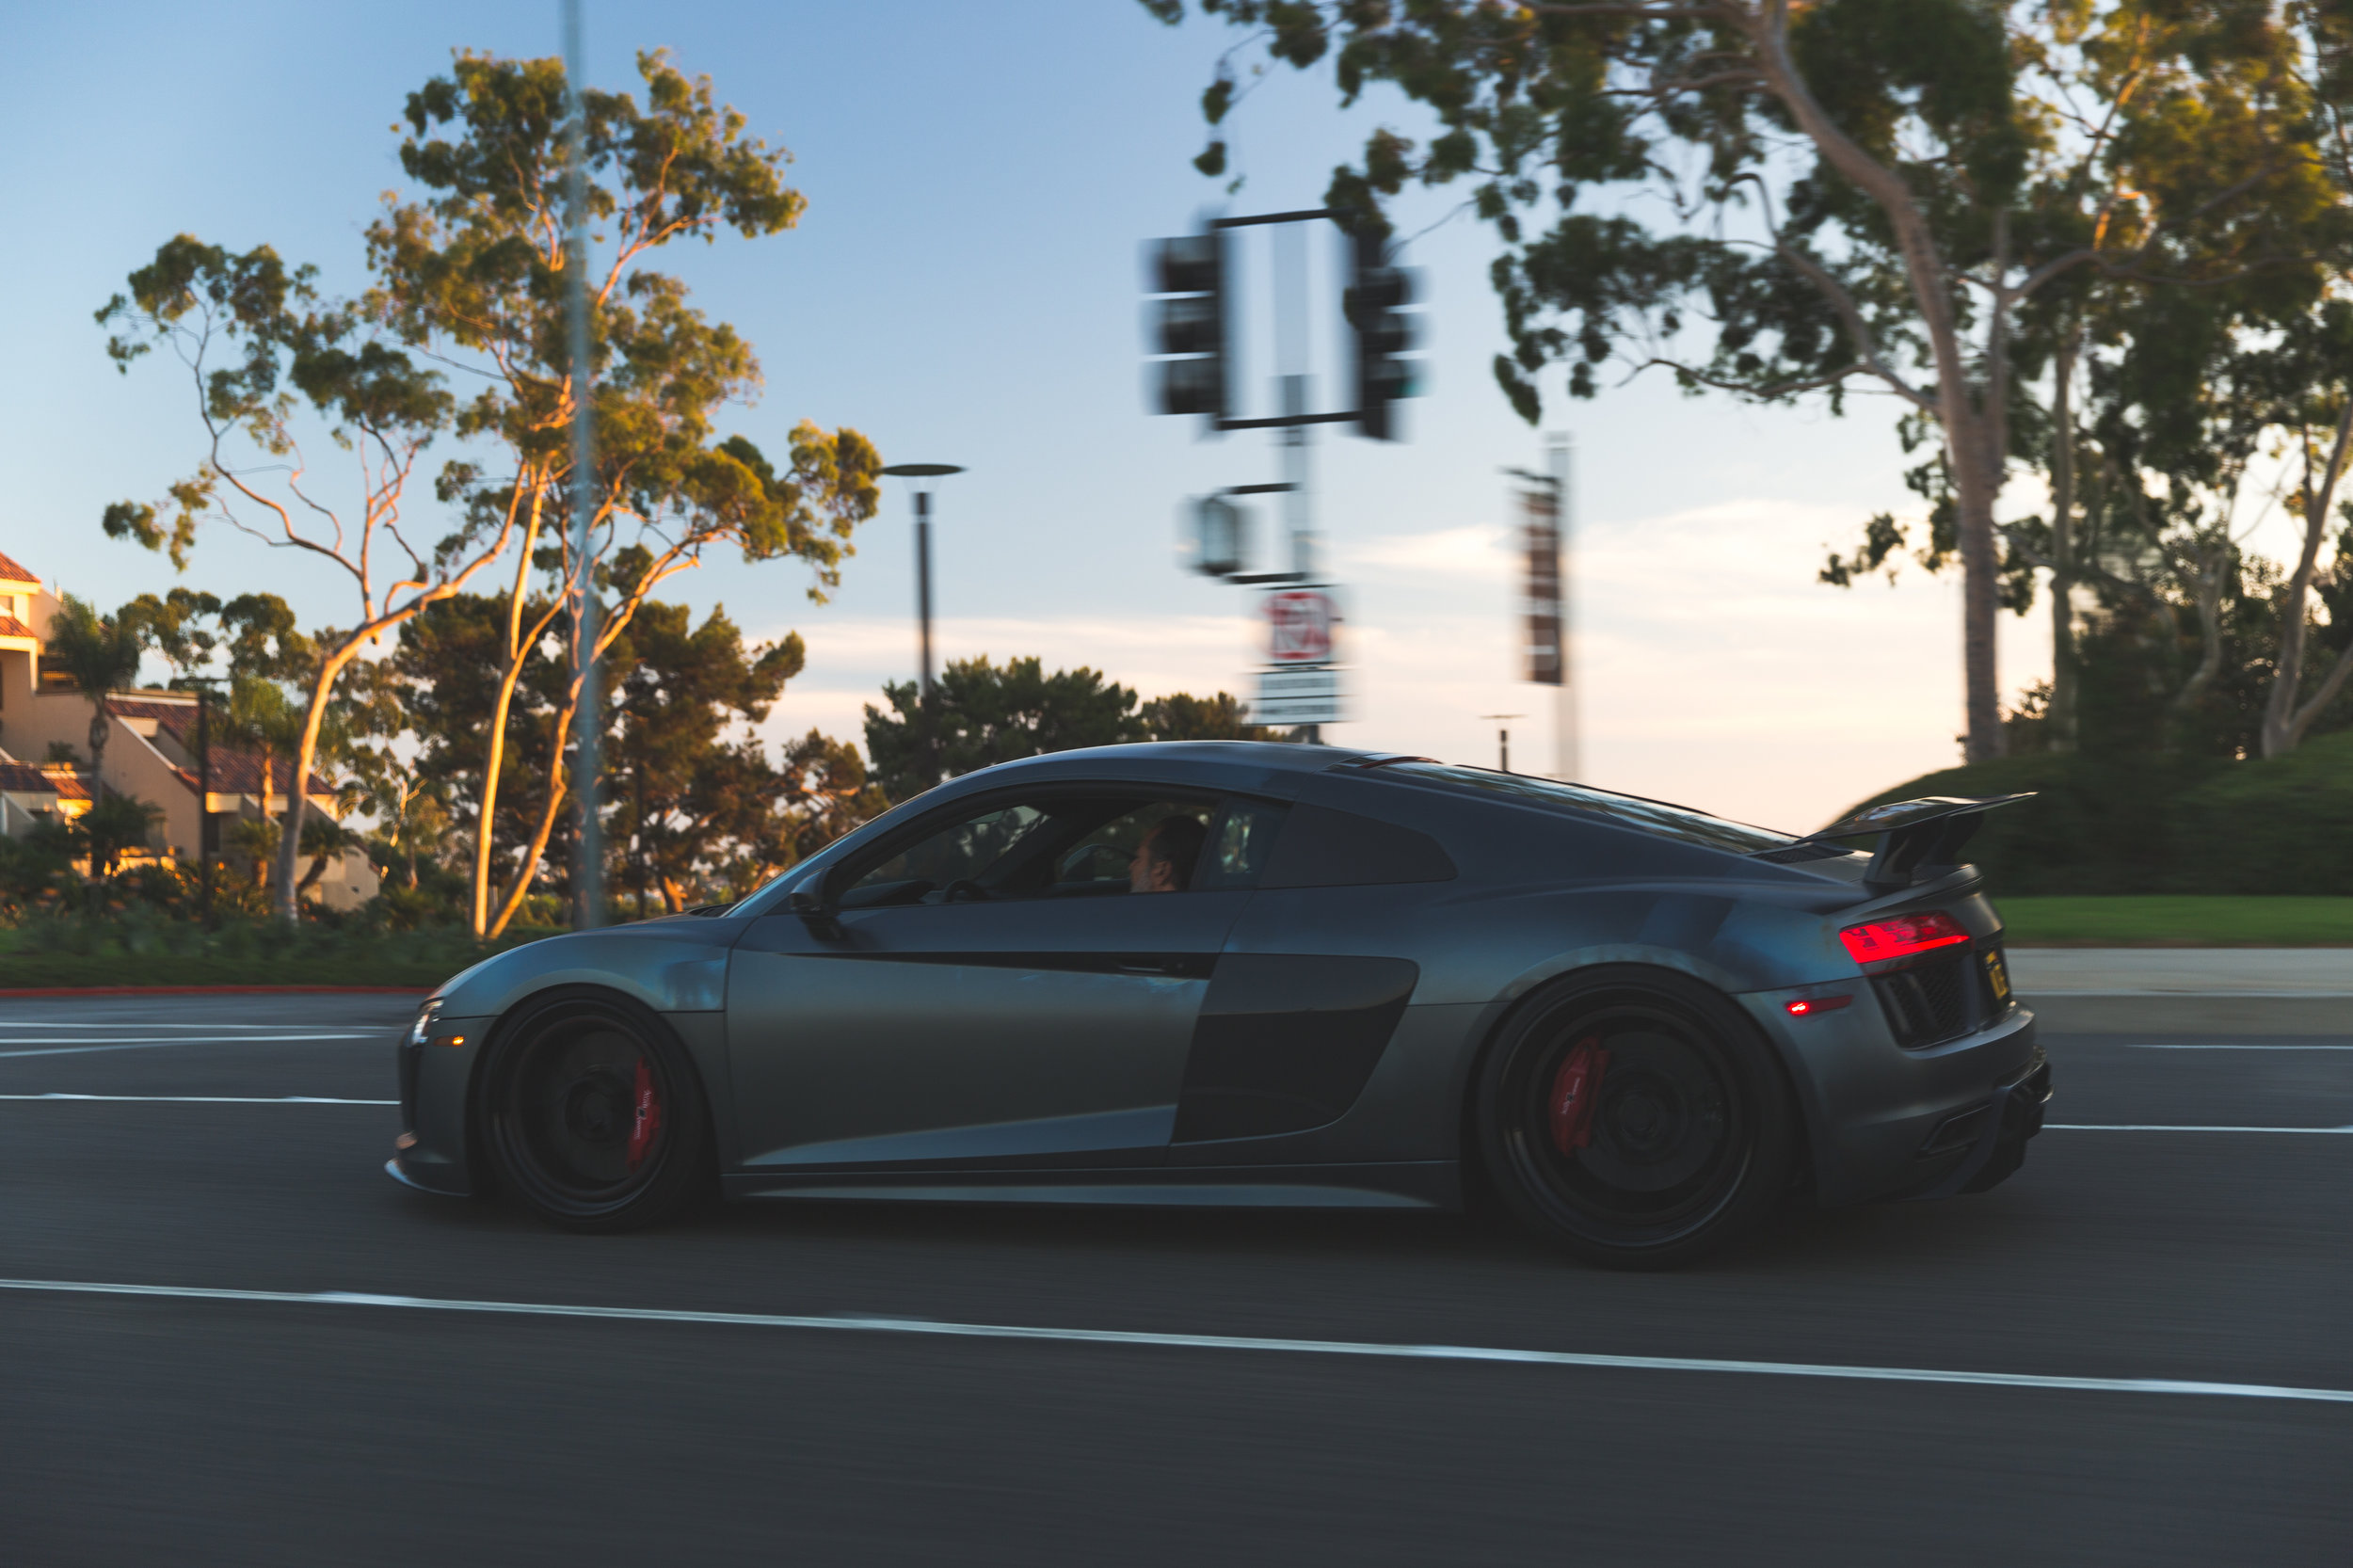 Stay_Driven_Page_R8_Newport-4.jpg